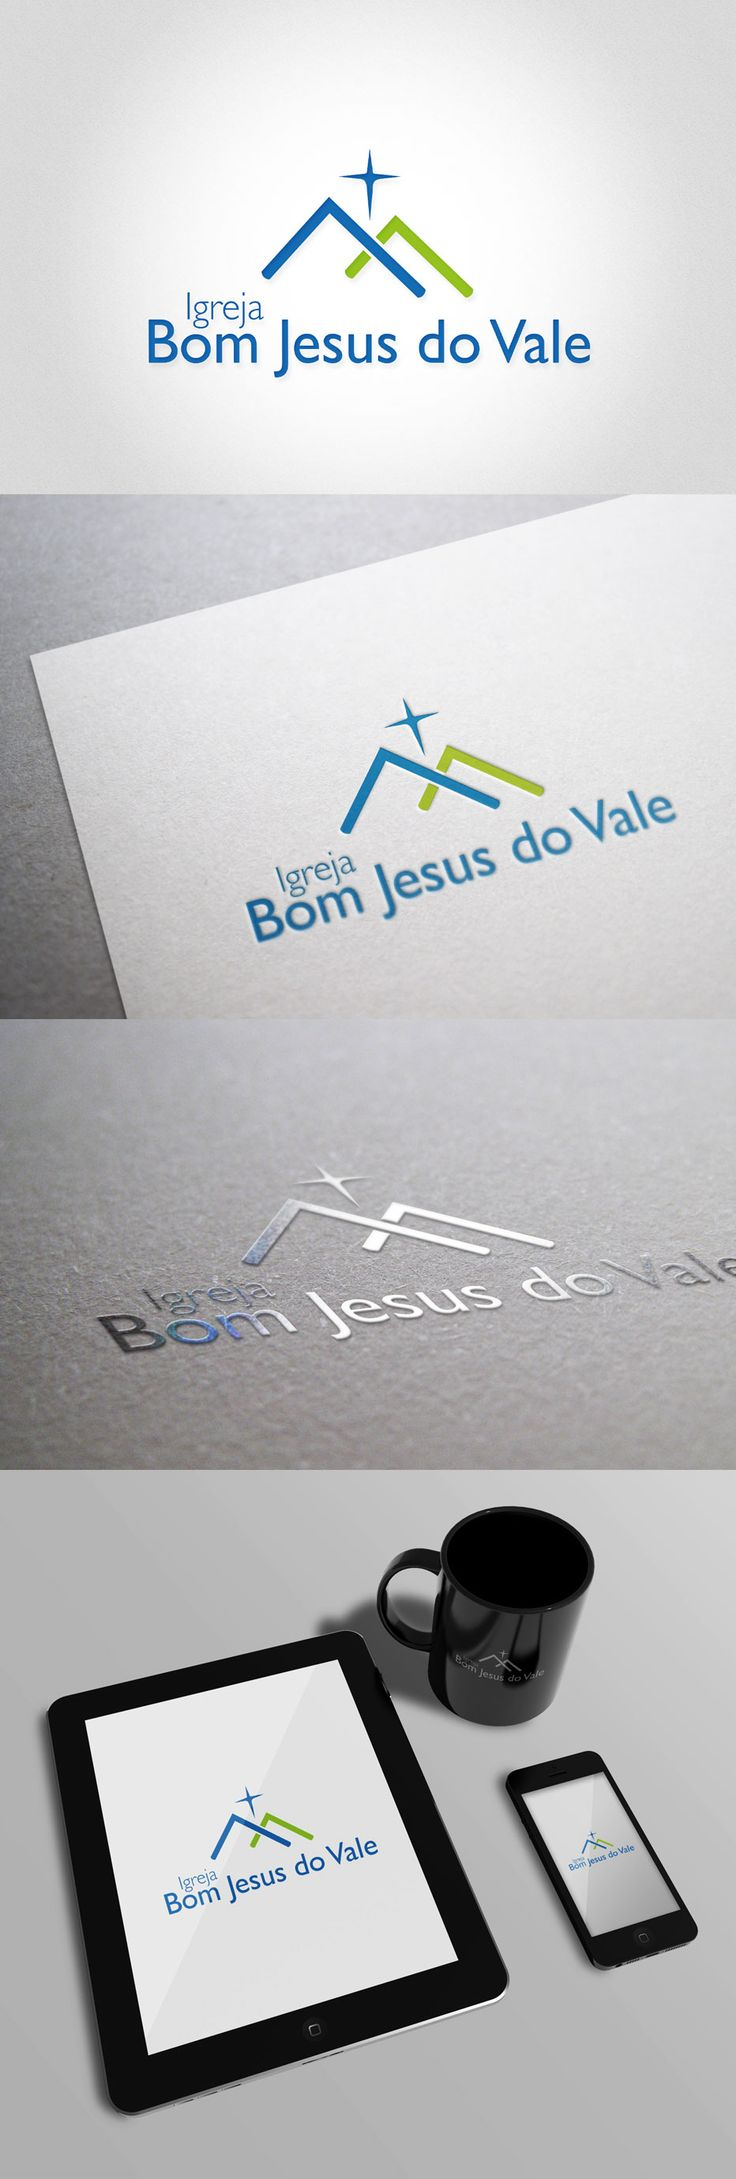 best branding images on pinterest church logo logo ideas and logos